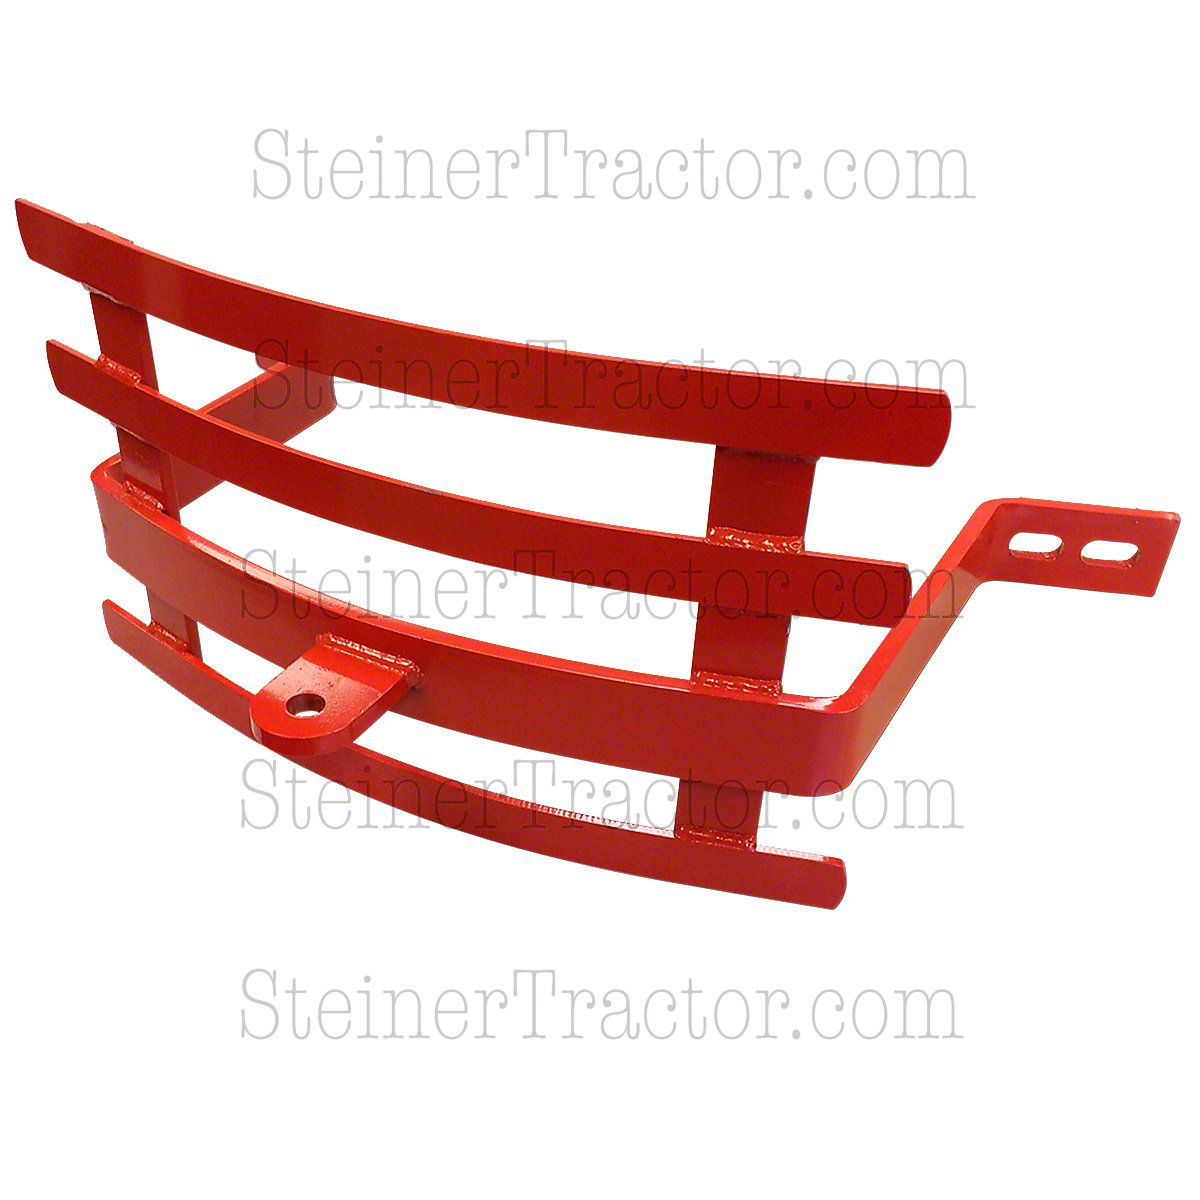 fds031 heavy duty ford front bumper fits 8n 9n 2n naa 600 800 more  [ 1200 x 1200 Pixel ]